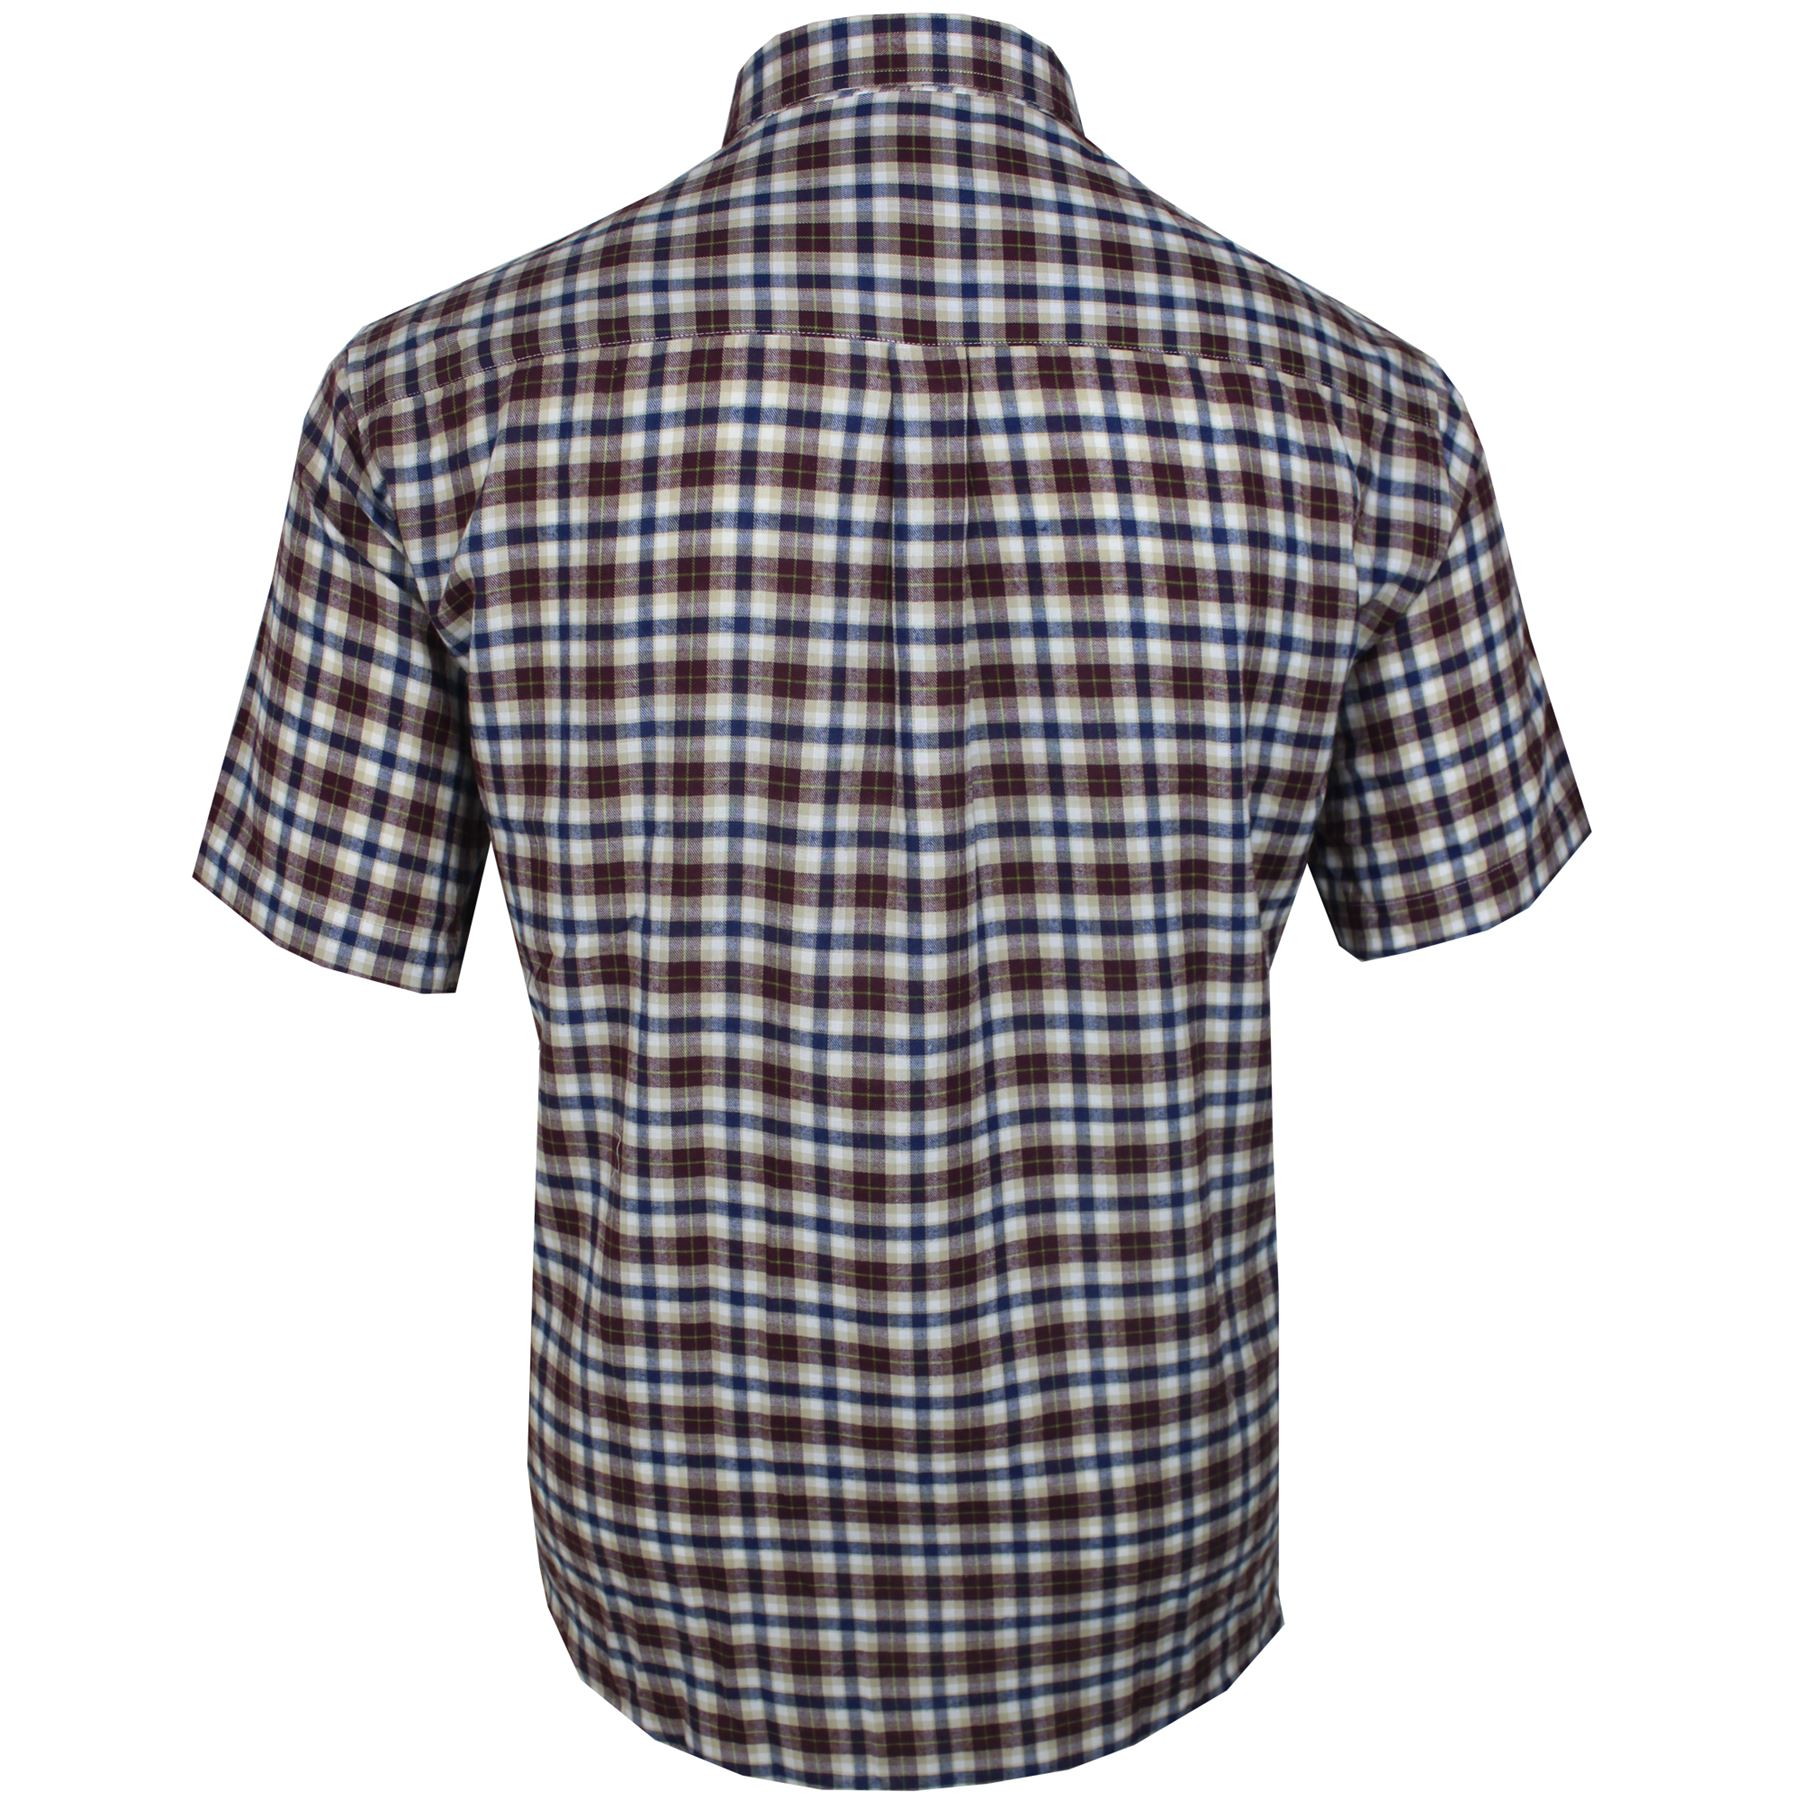 Mens Cotton Valley Big Size Check Pattern Casual Short Sleeve Shirt 3XL 4XL 5XL